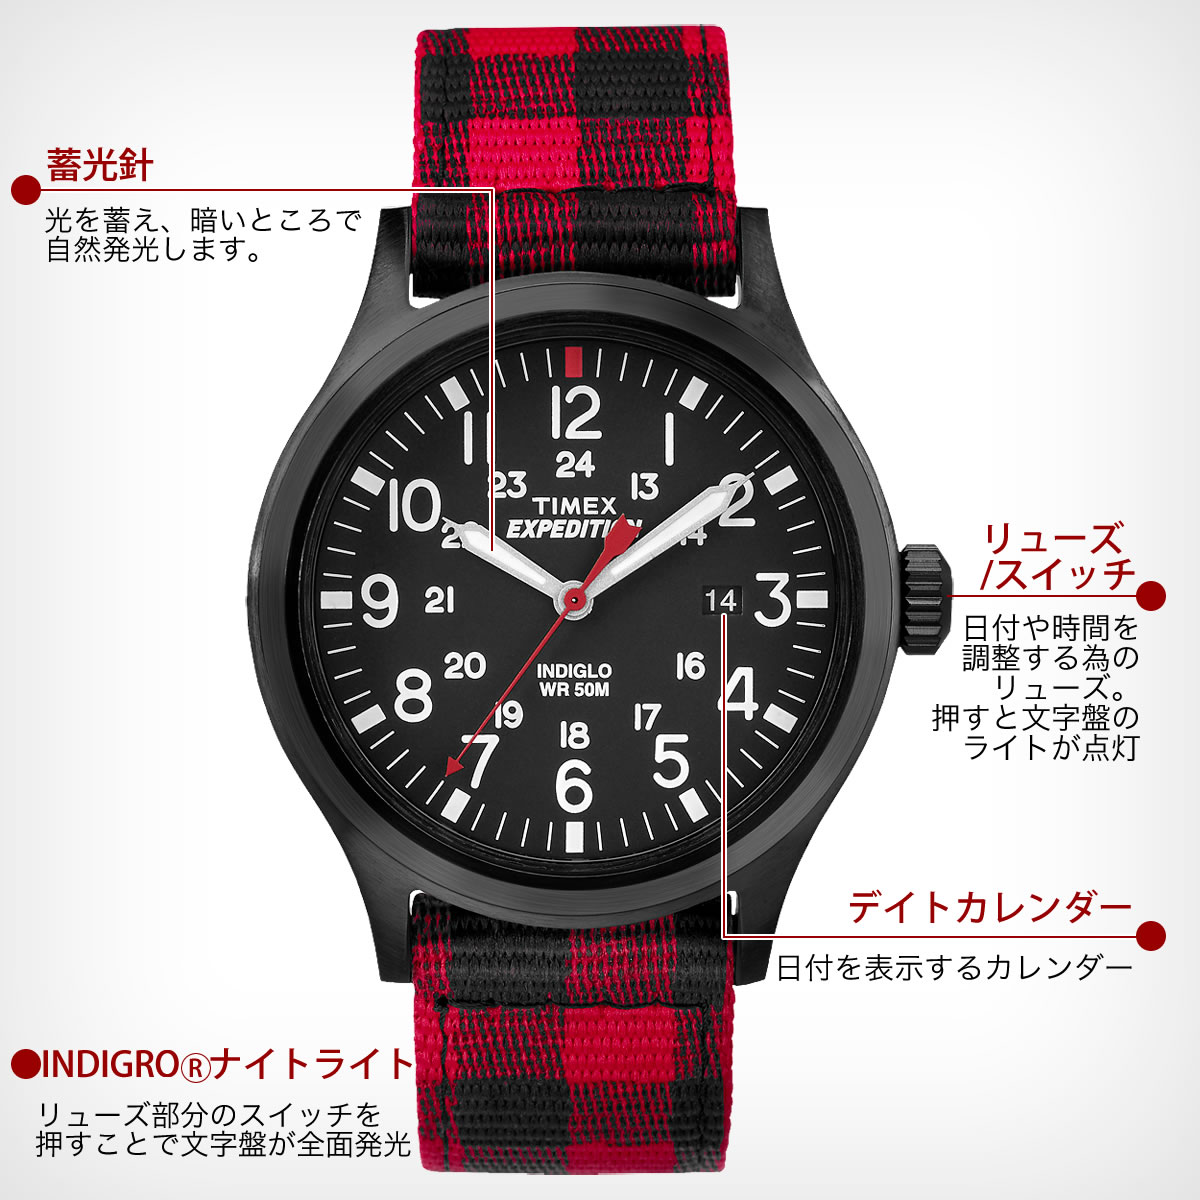 TIMEX Expedition  SCOUT 赤バッファローチェック柄 40mm TW4B02000 機能詳細